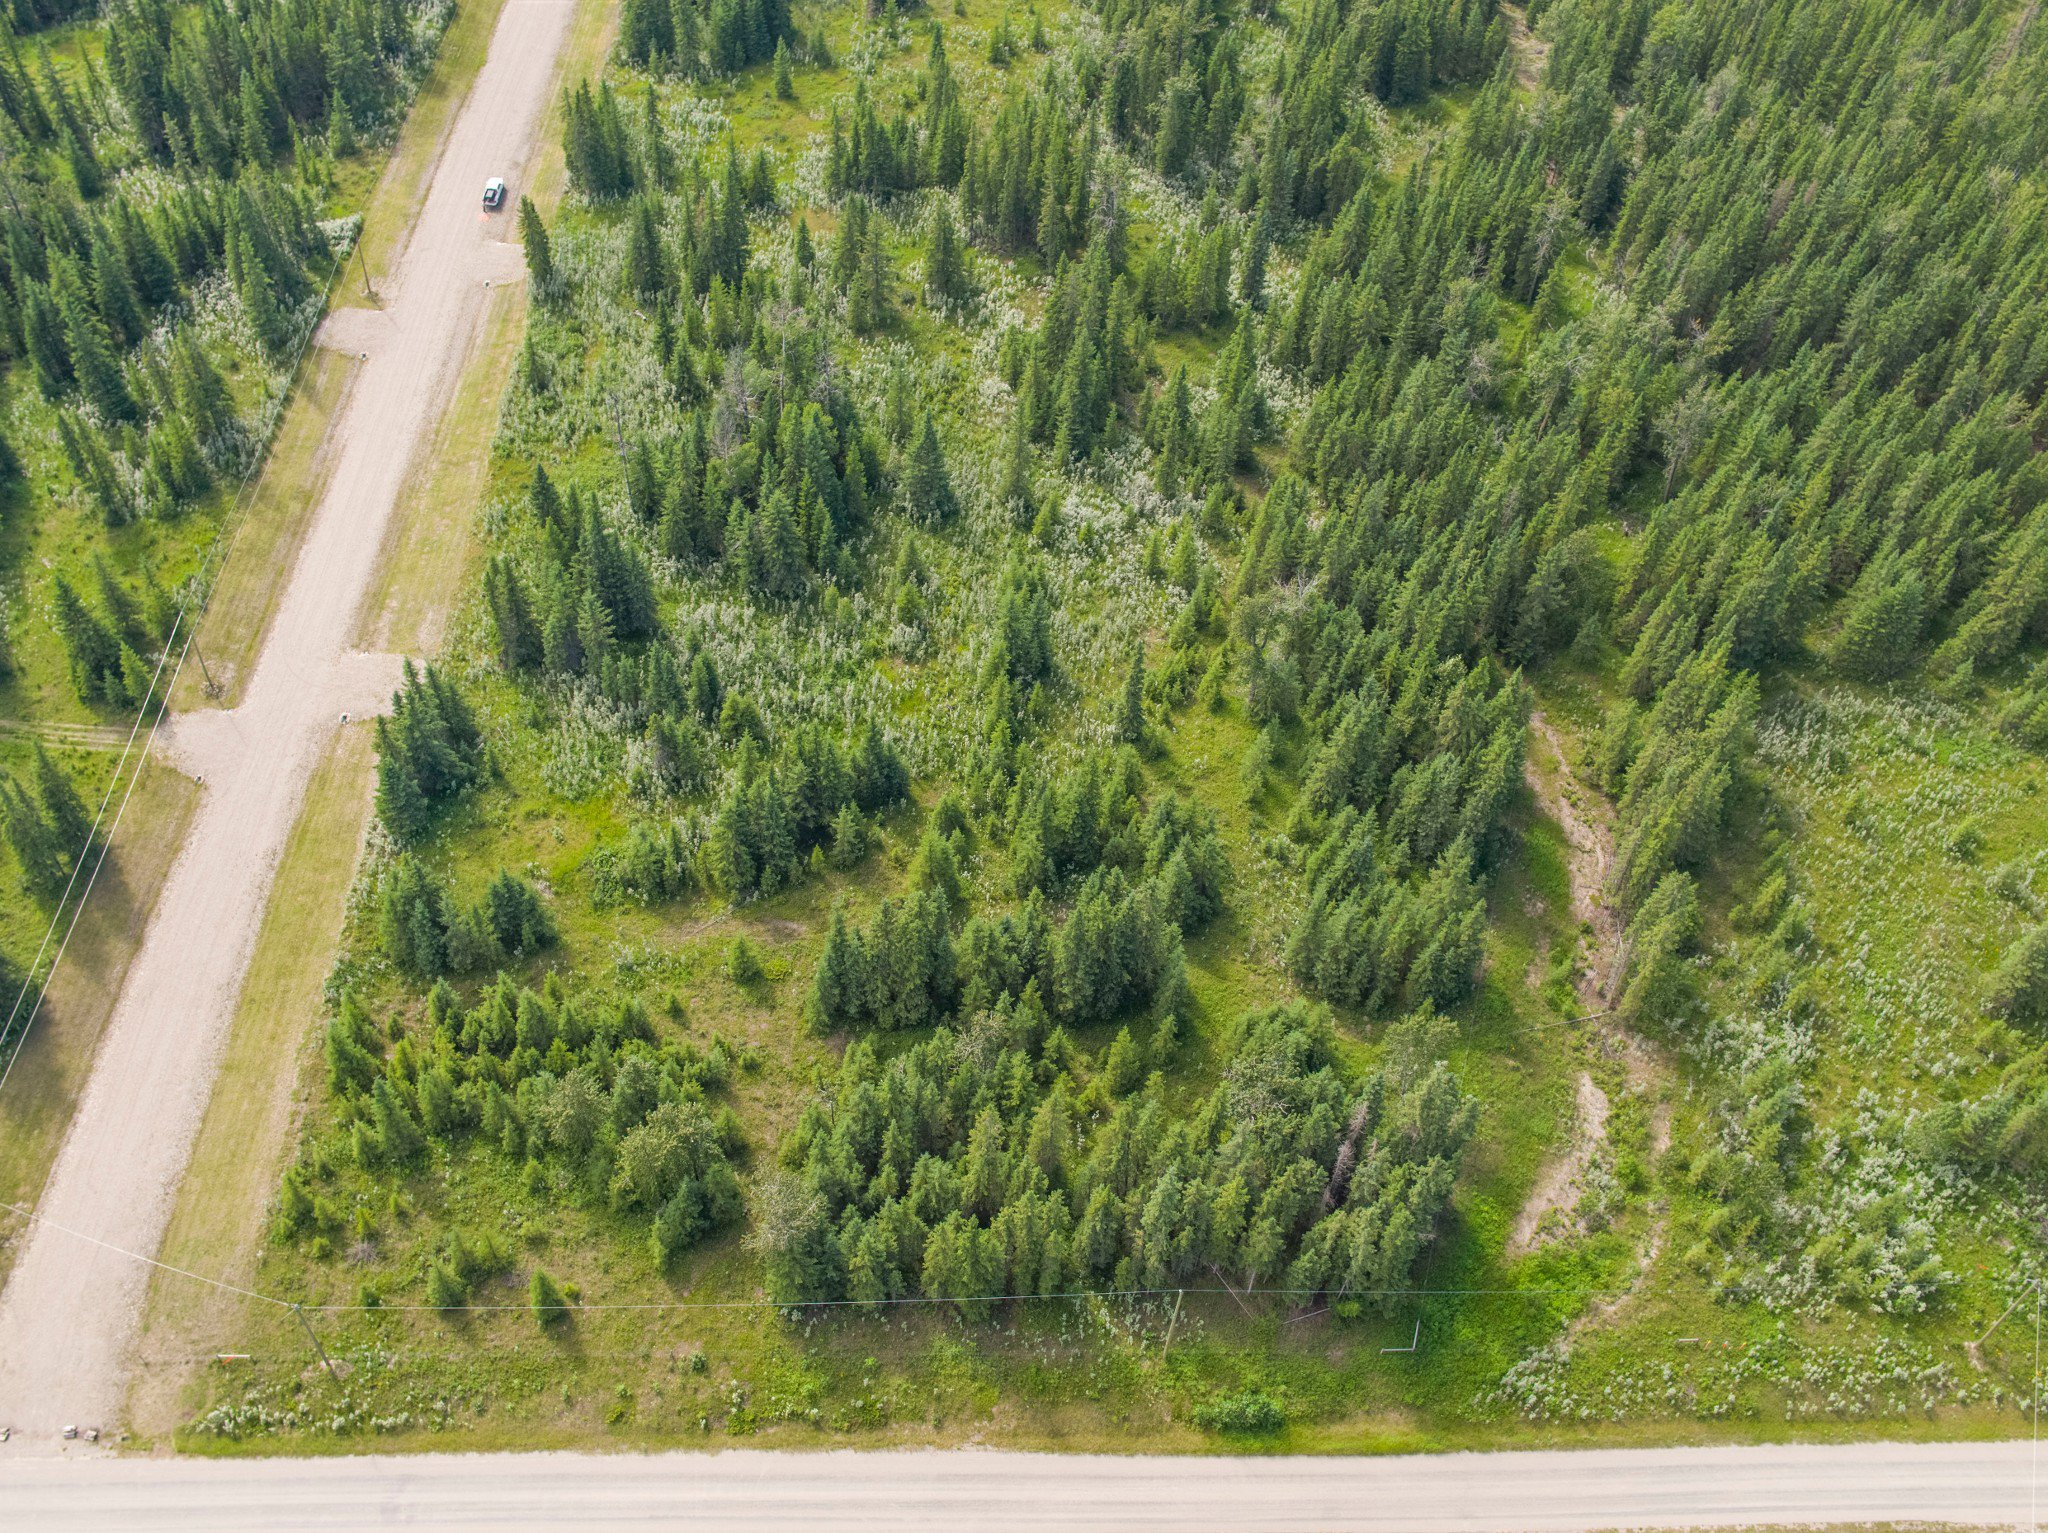 Main Photo: 4-34364 RANGE ROAD 42 in : Rural Mountain View County Land for sale (Mountain View)